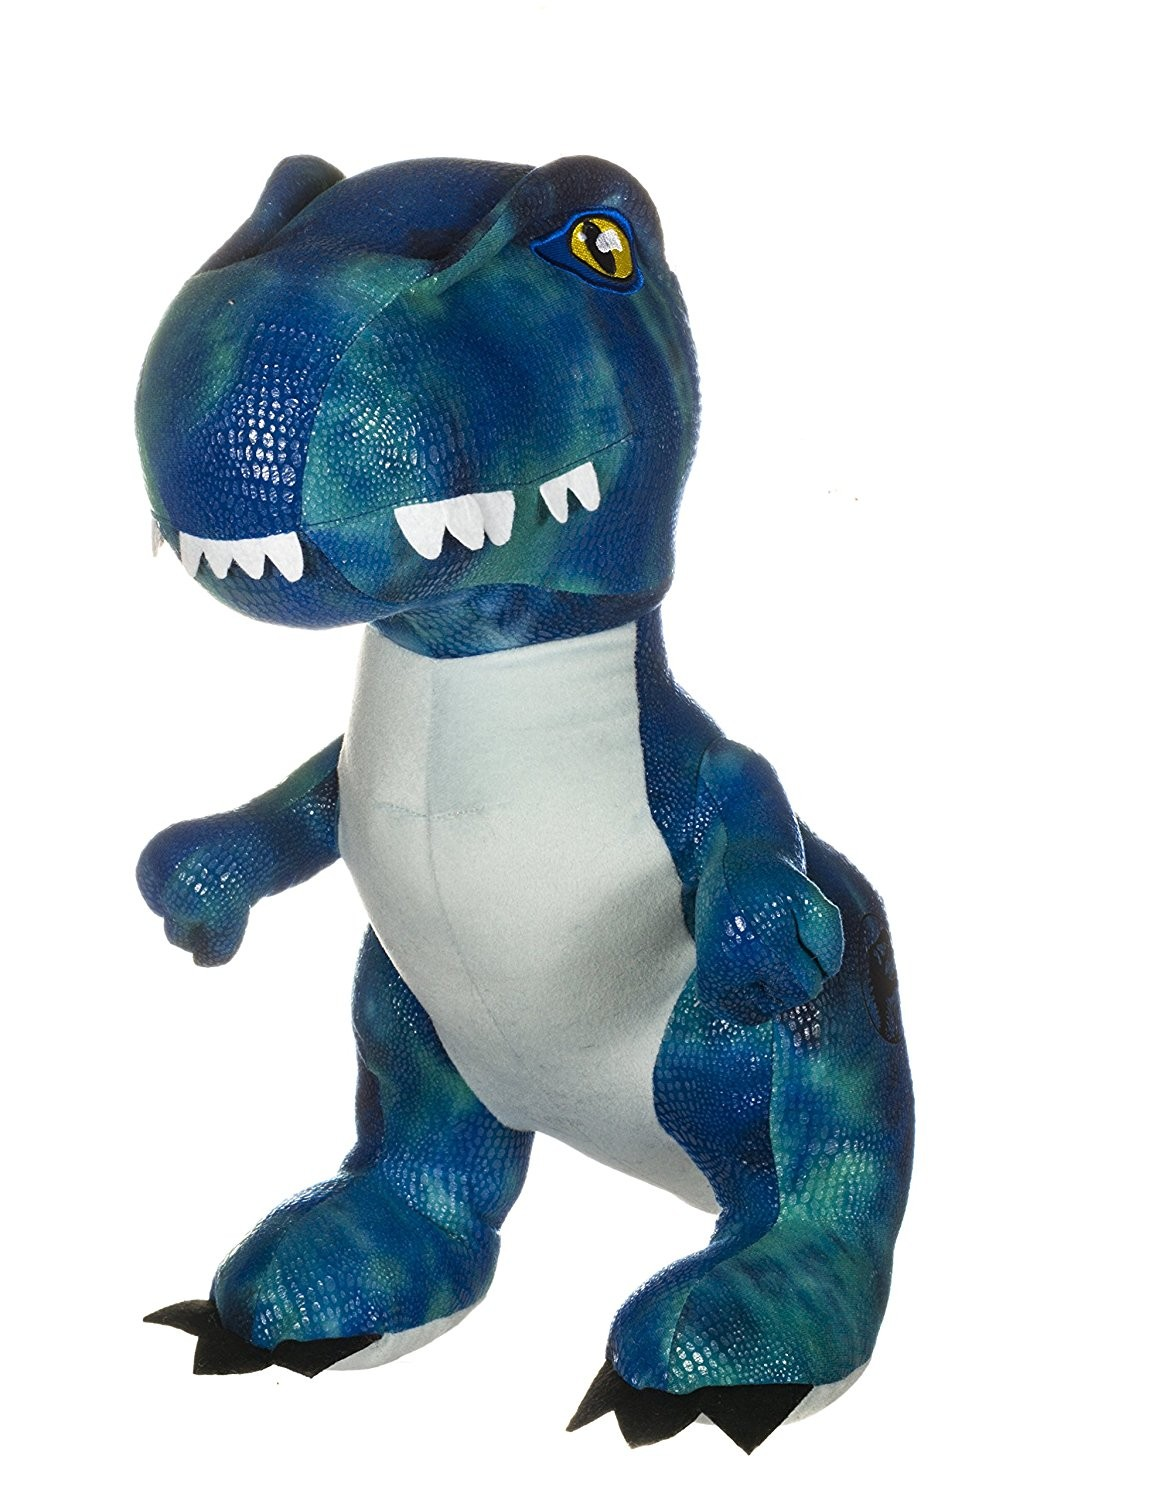 Aurora Monkey Stuffed Animal, Jurassic World Plush Blue Raptor Toys For Babies Toddlers And Kids Whirli Toy Sharing Subscription Box Whirli